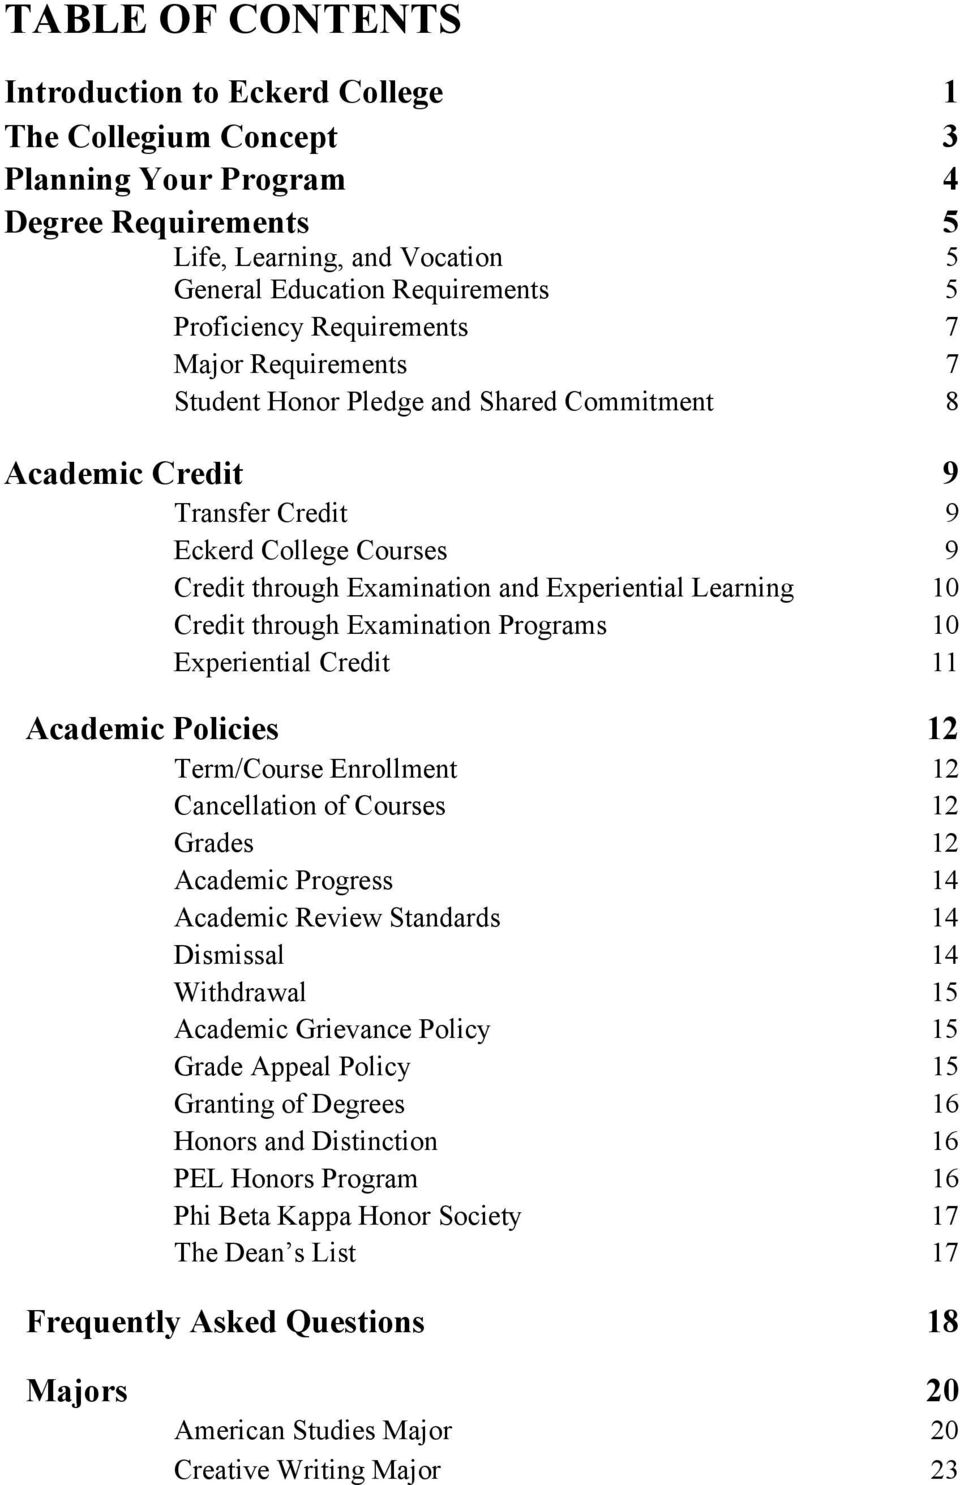 Credit through Examination Programs 10 Experiential Credit 11 Academic Policies 12 Term/Course Enrollment 12 Cancellation of Courses 12 Grades 12 Academic Progress 14 Academic Review Standards 14